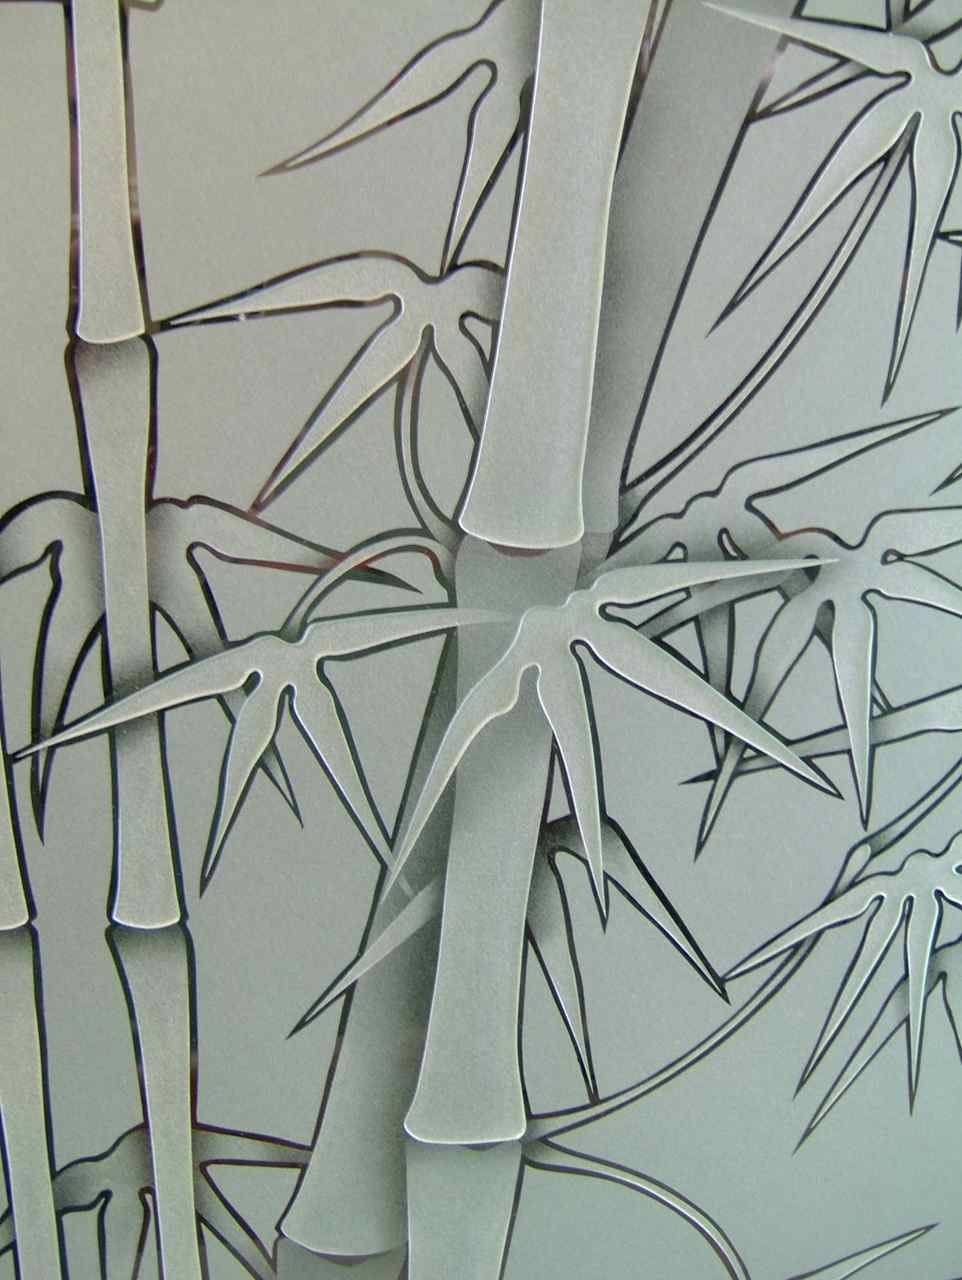 Etched glass doors privacy glass door inserts bamboo pictures to pin - Bamboo Shoots Pinstripe Etched Glass Doors Asian Decor Decorative Glass Doors That Provide Privacy Thru Art